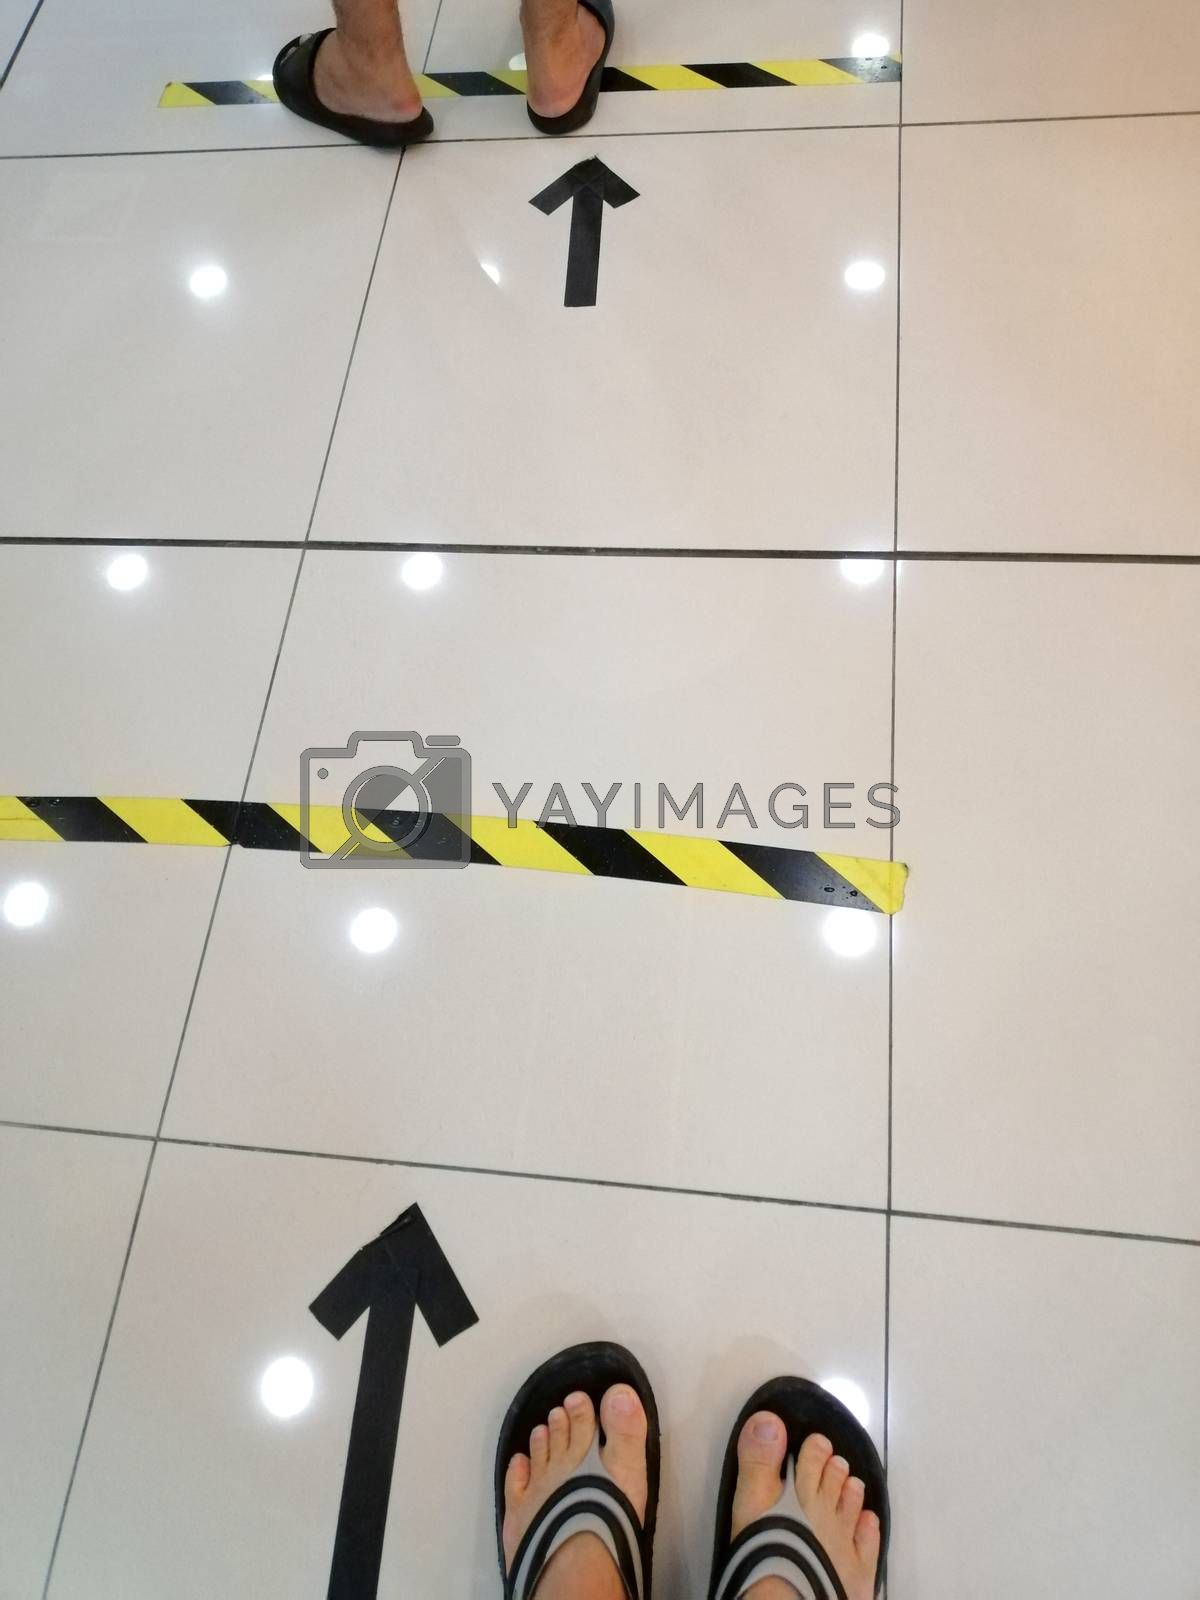 People stand in yellow black footprint  line on the floor of the store to maintain social distance. Concept of the coronavirus pandemic and prevention measures.